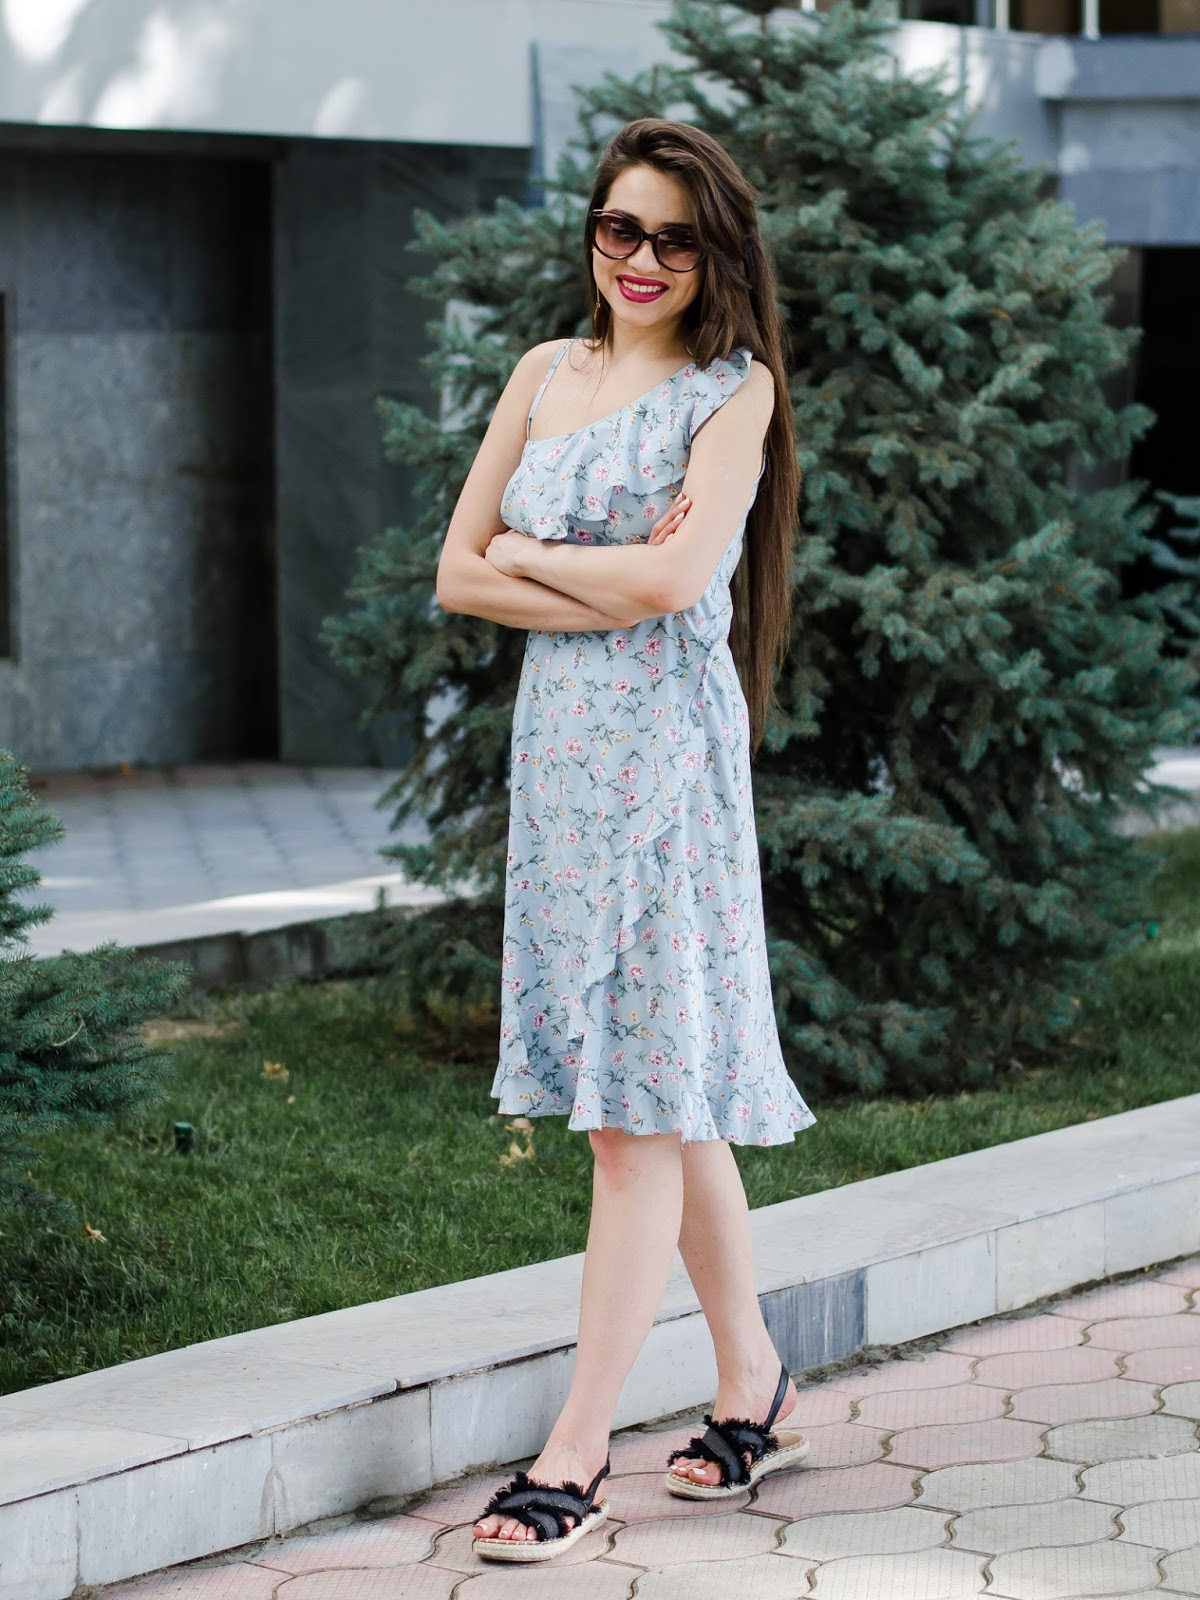 diyorasnotes%2Bdiyora%2Bbeta%2Bfashion%2Bblogger%2Bstyle%2Boutfitoftheday%2Blookoftheday%2Bflower%2Bdress%2Bcasual%2Bromantic%2Bmood%2B 8 - CASUAL DRESS